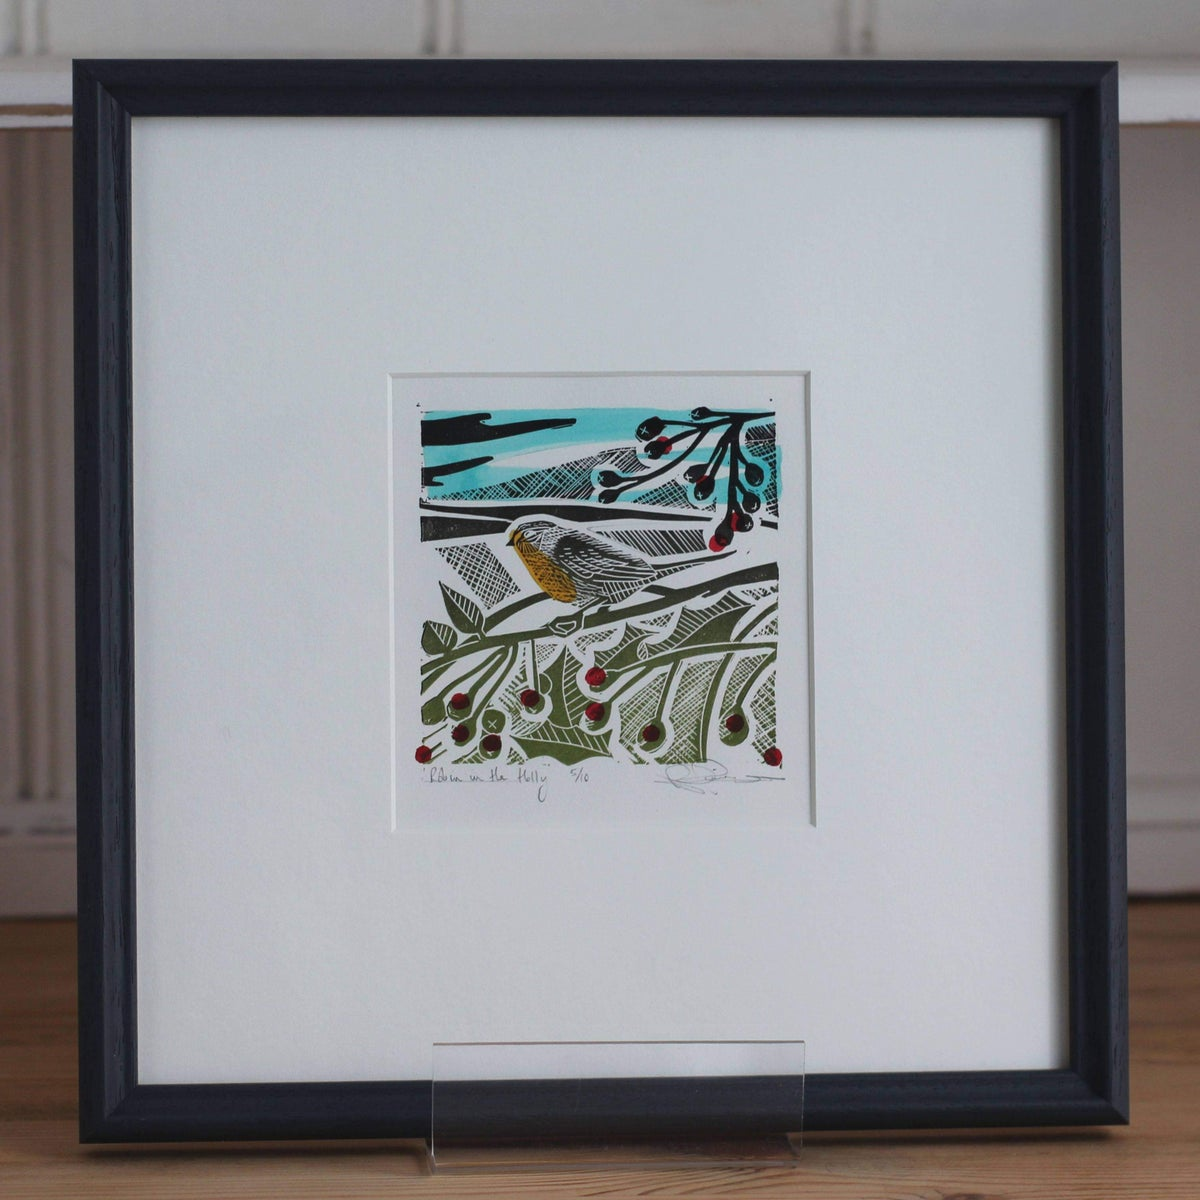 Image of 'Into the holly and the hedgerow' framed linocut